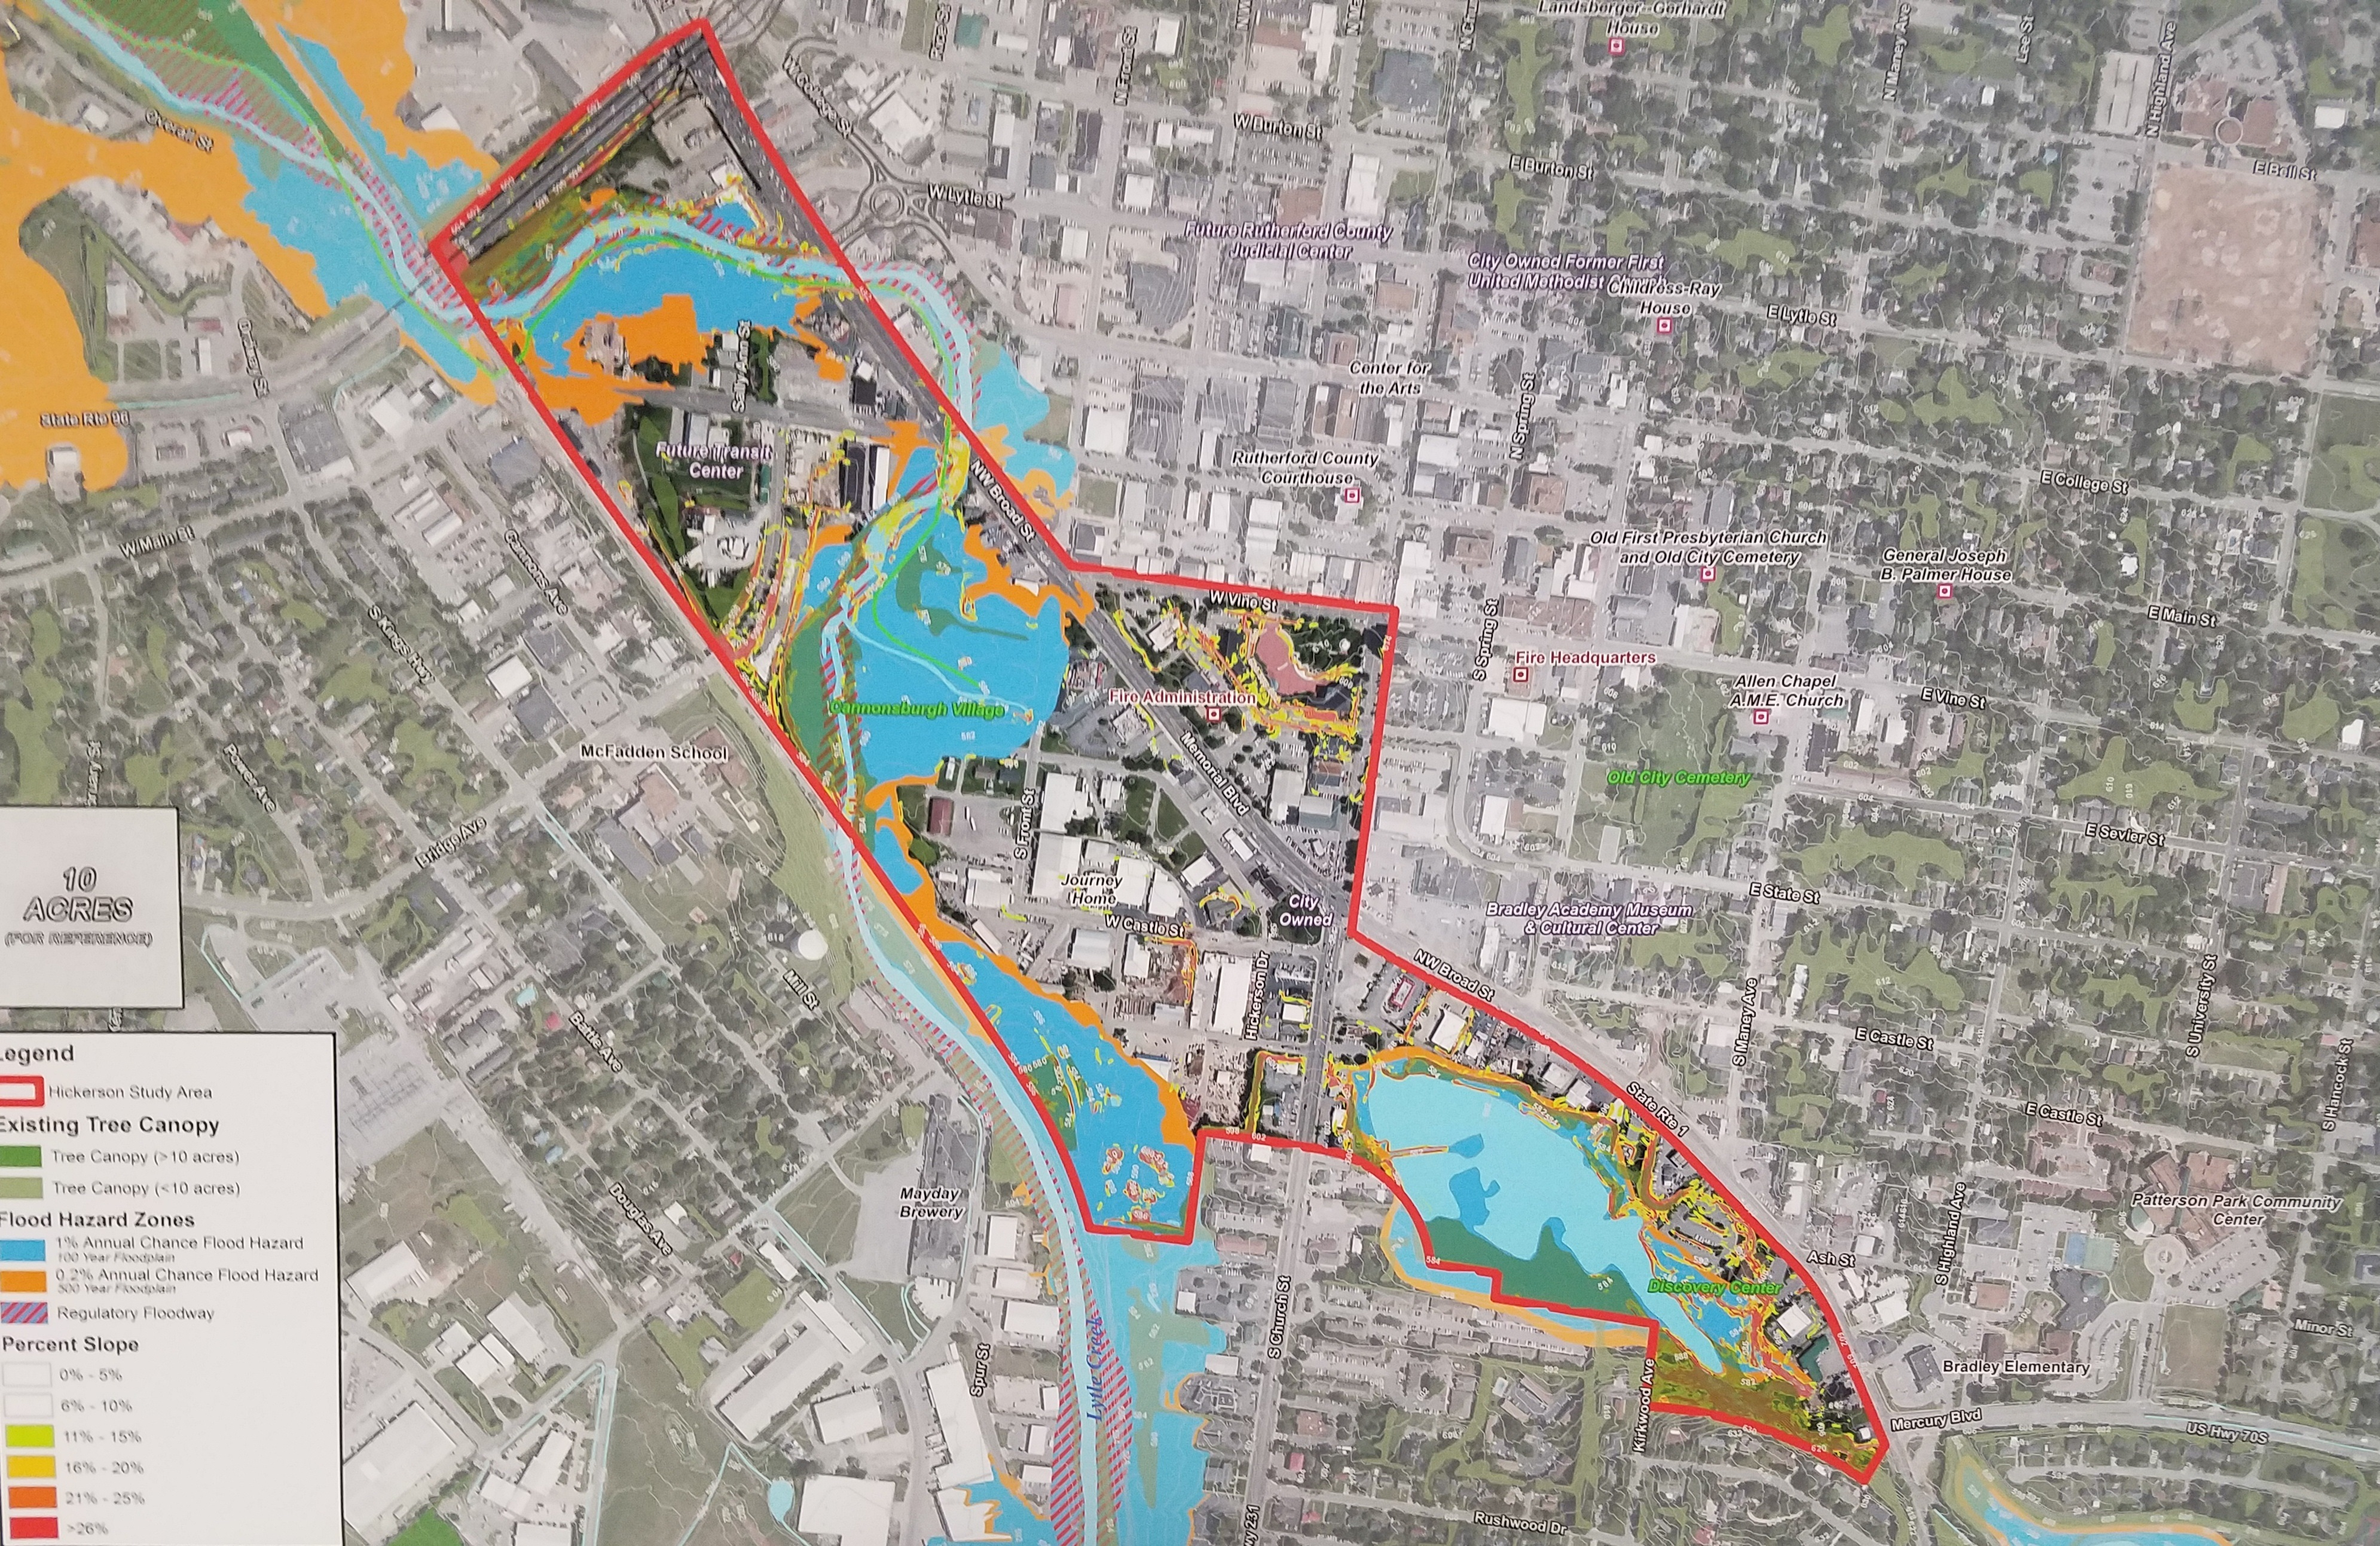 How Should the Bottoms Area in Murfreesboro Look in the Future?